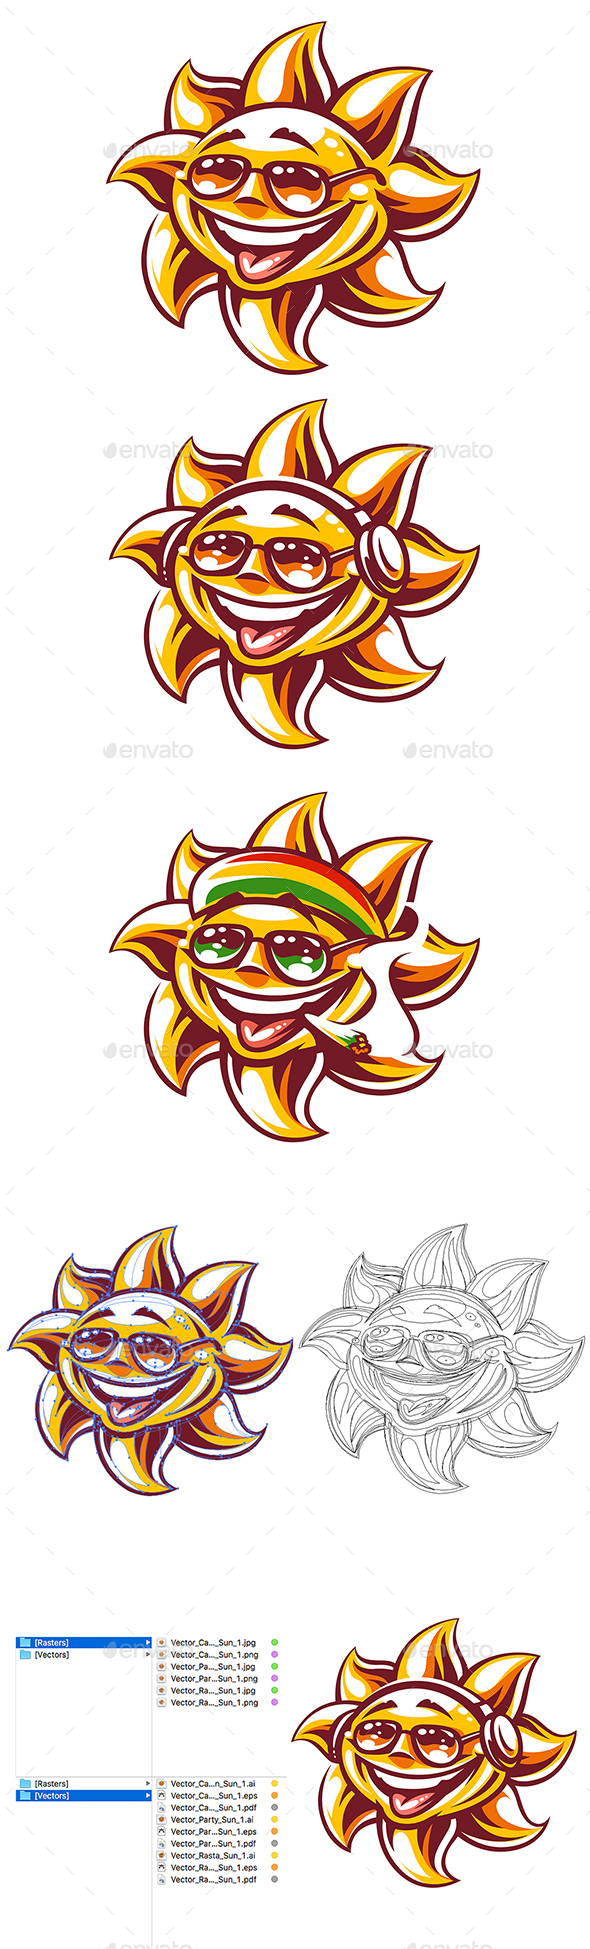 590x1949 Happy Sun Vector Art 3 Versions By Vecster Graphicriver